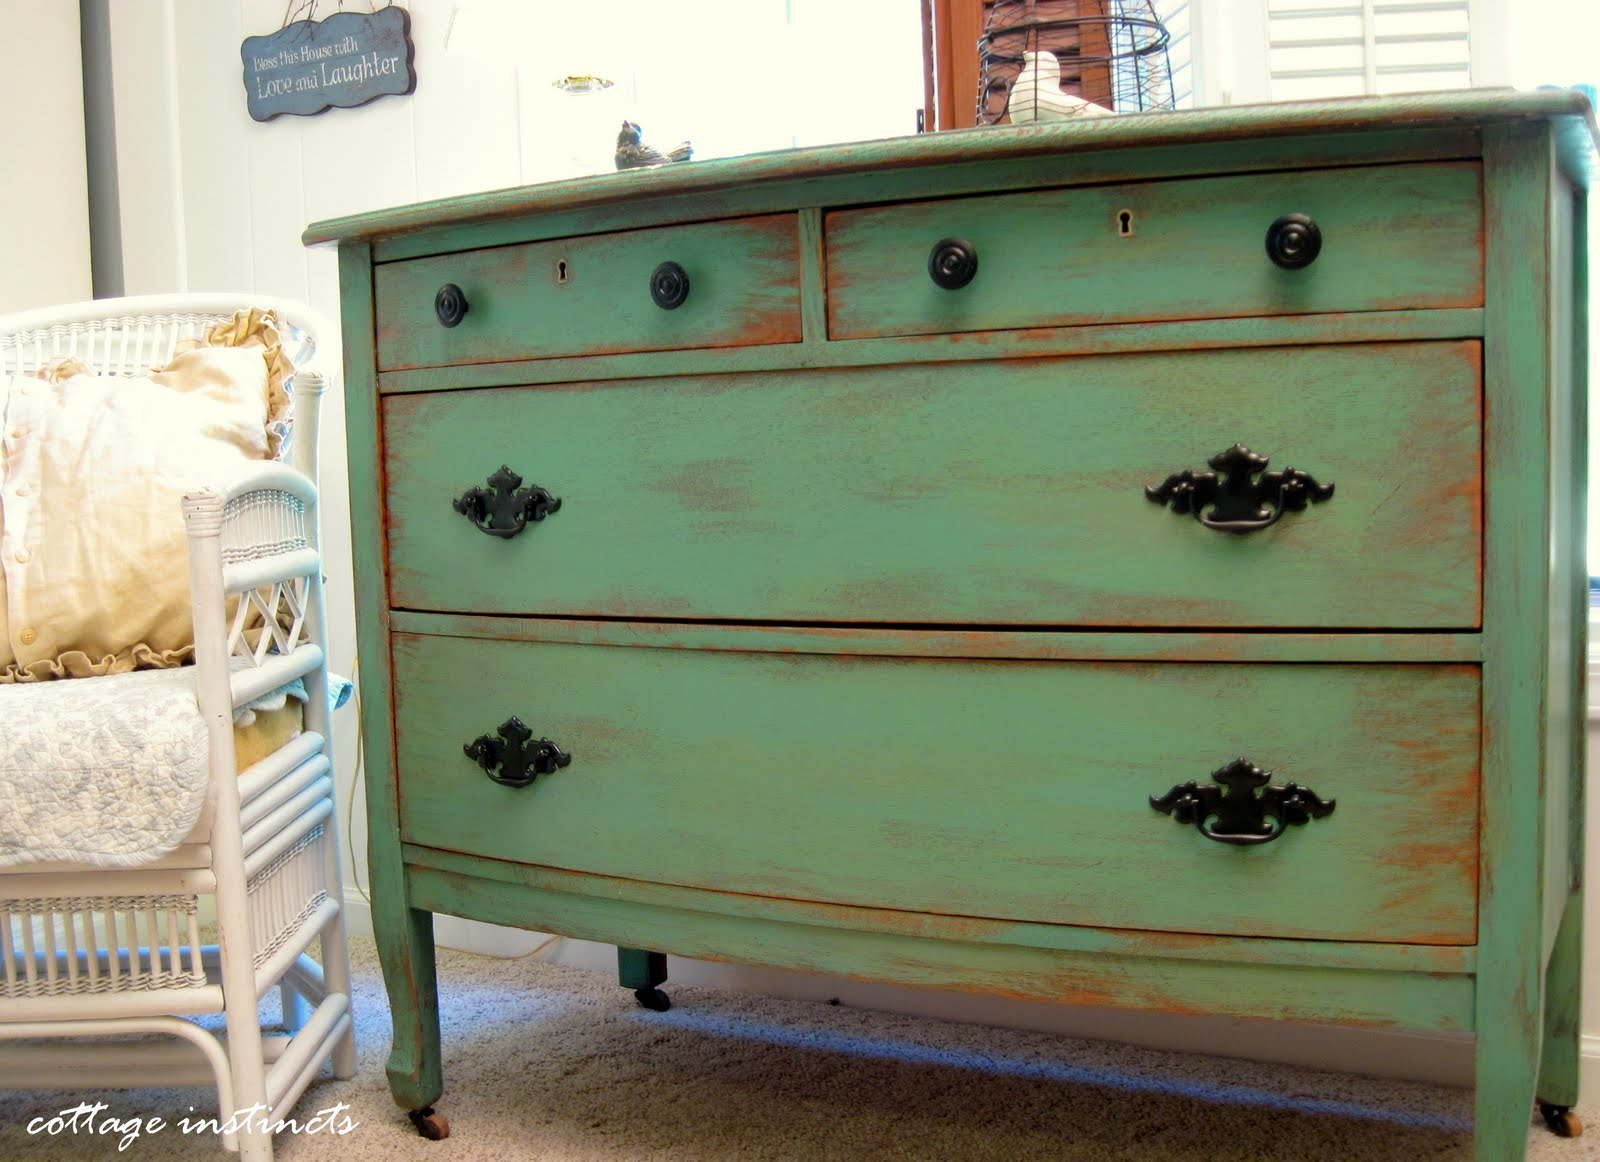 cottage instincts: How I Paint and Distress a Dresser: In a Somewhat ...